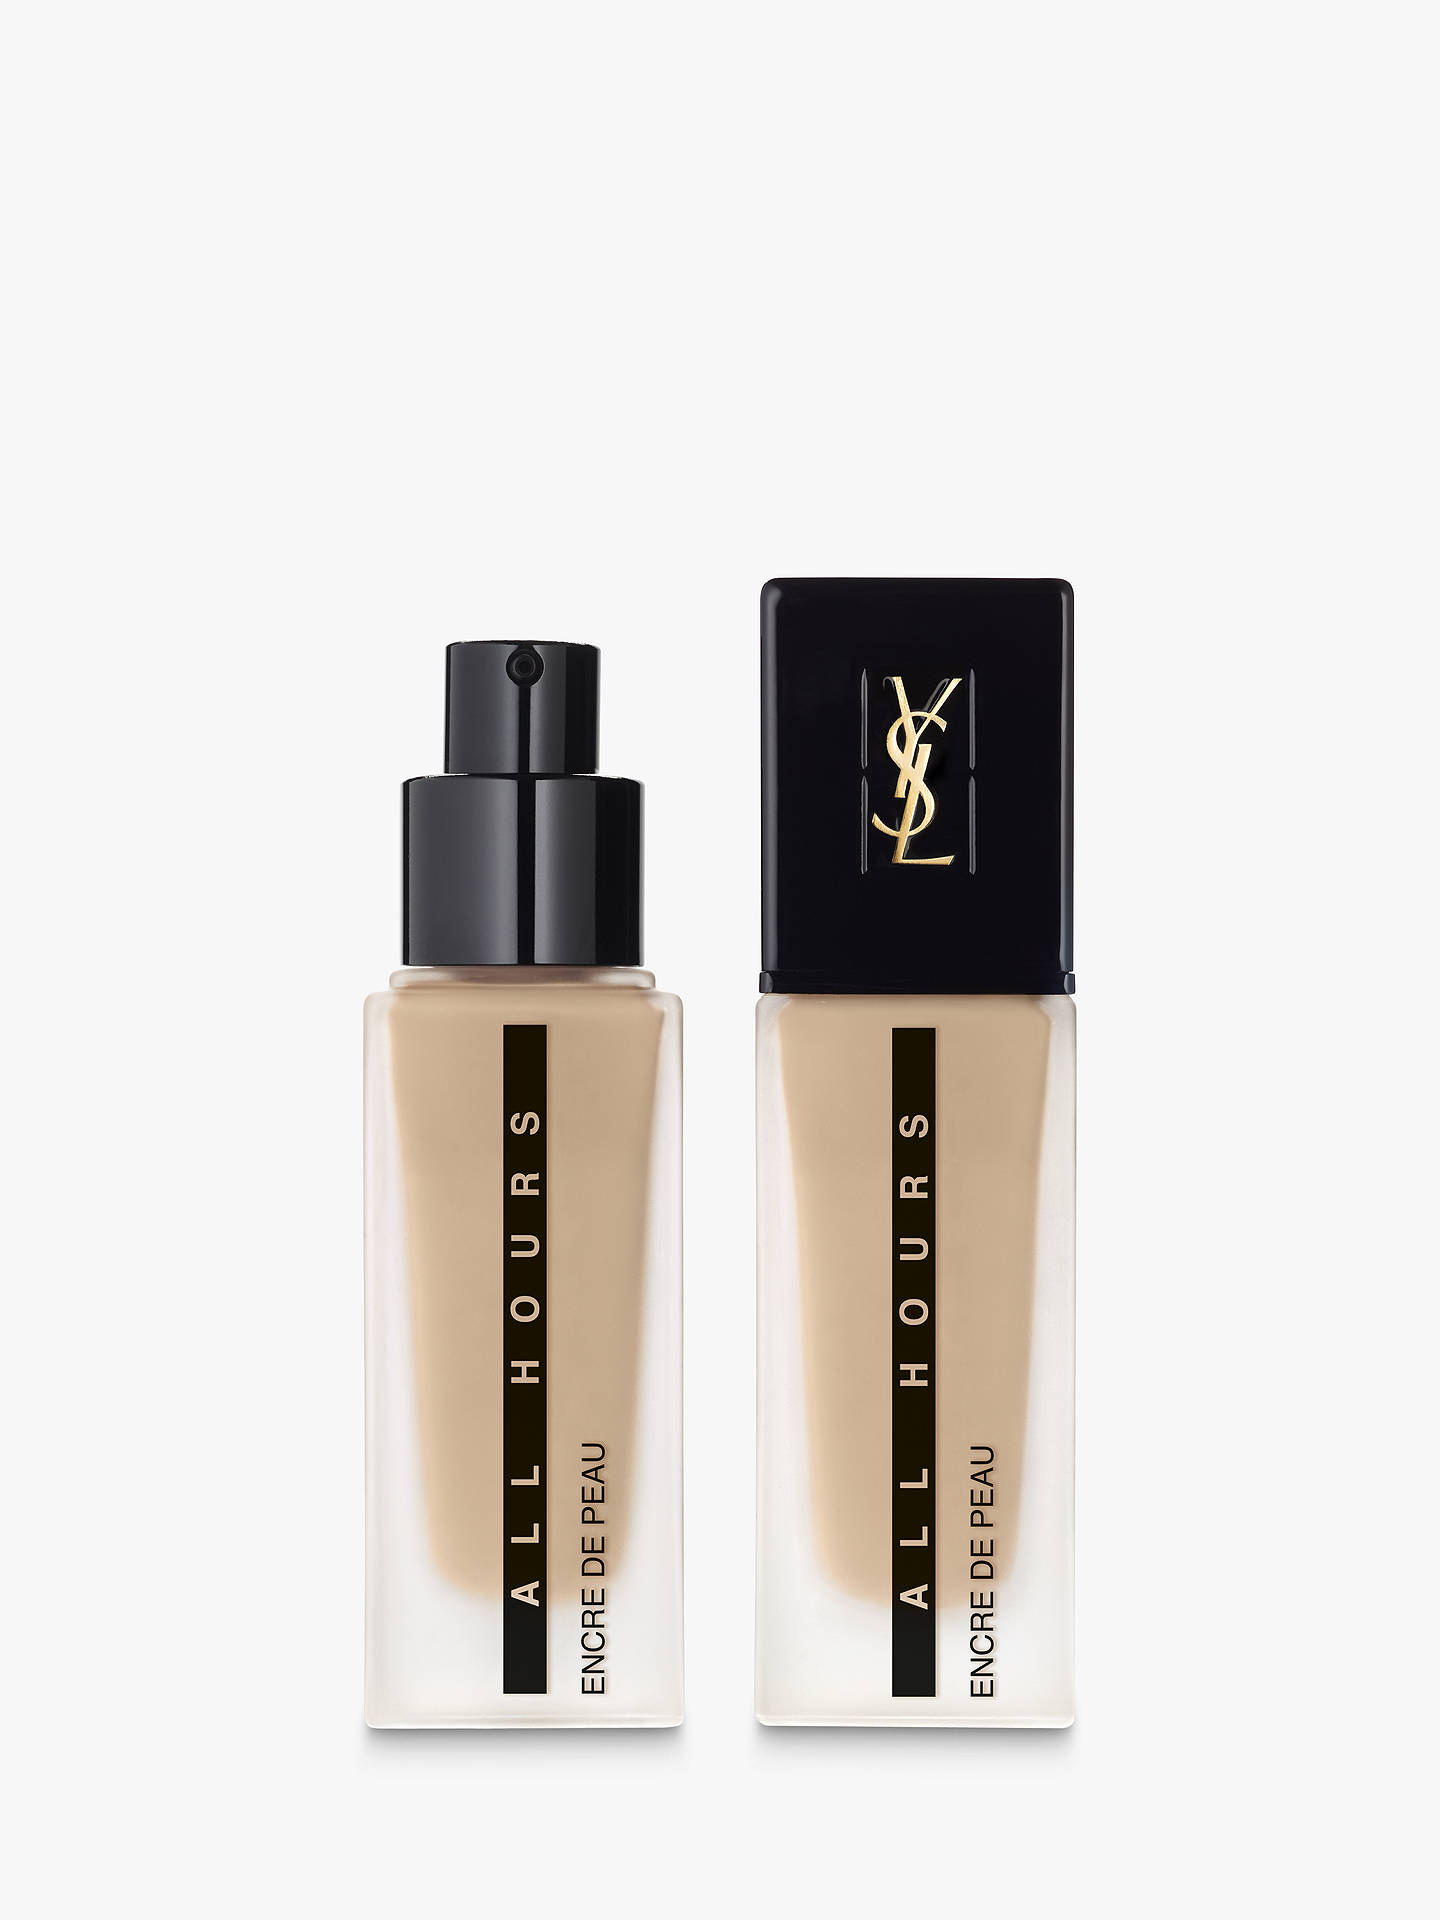 Yves Saint Laurent – 'All Hours' B10